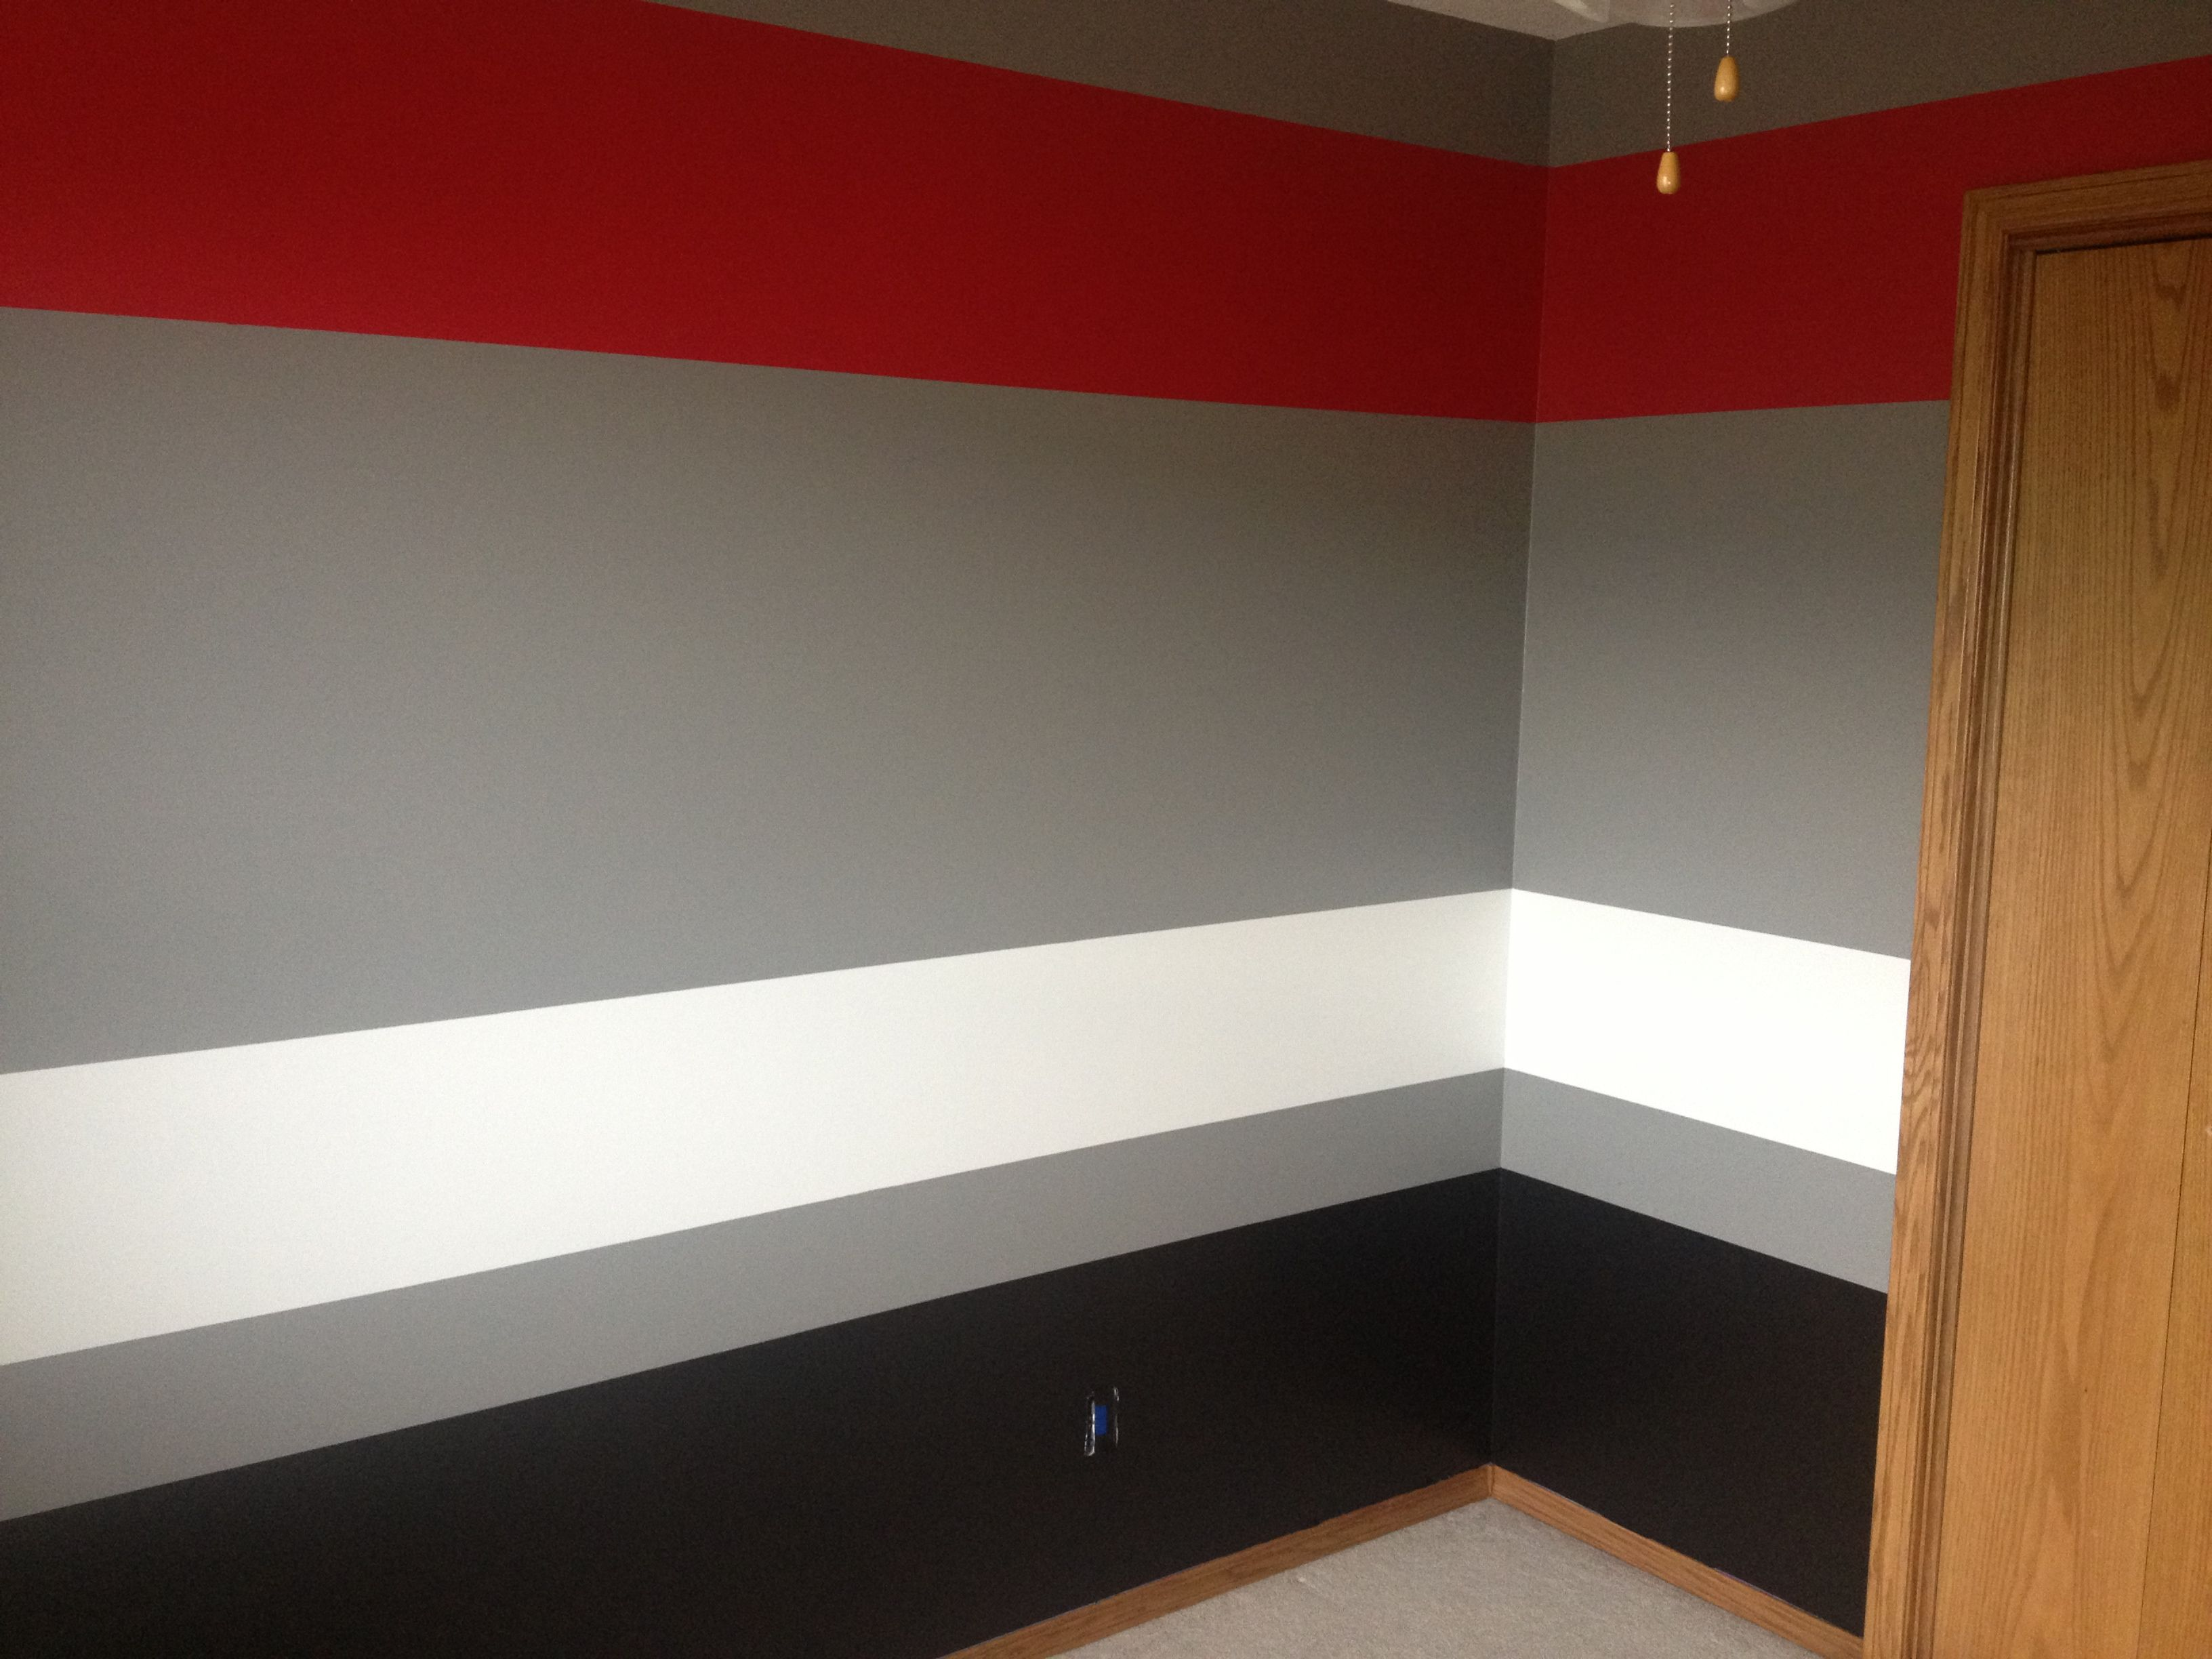 Painted room grey red white black rooms pinterest for Bedroom designs red and black